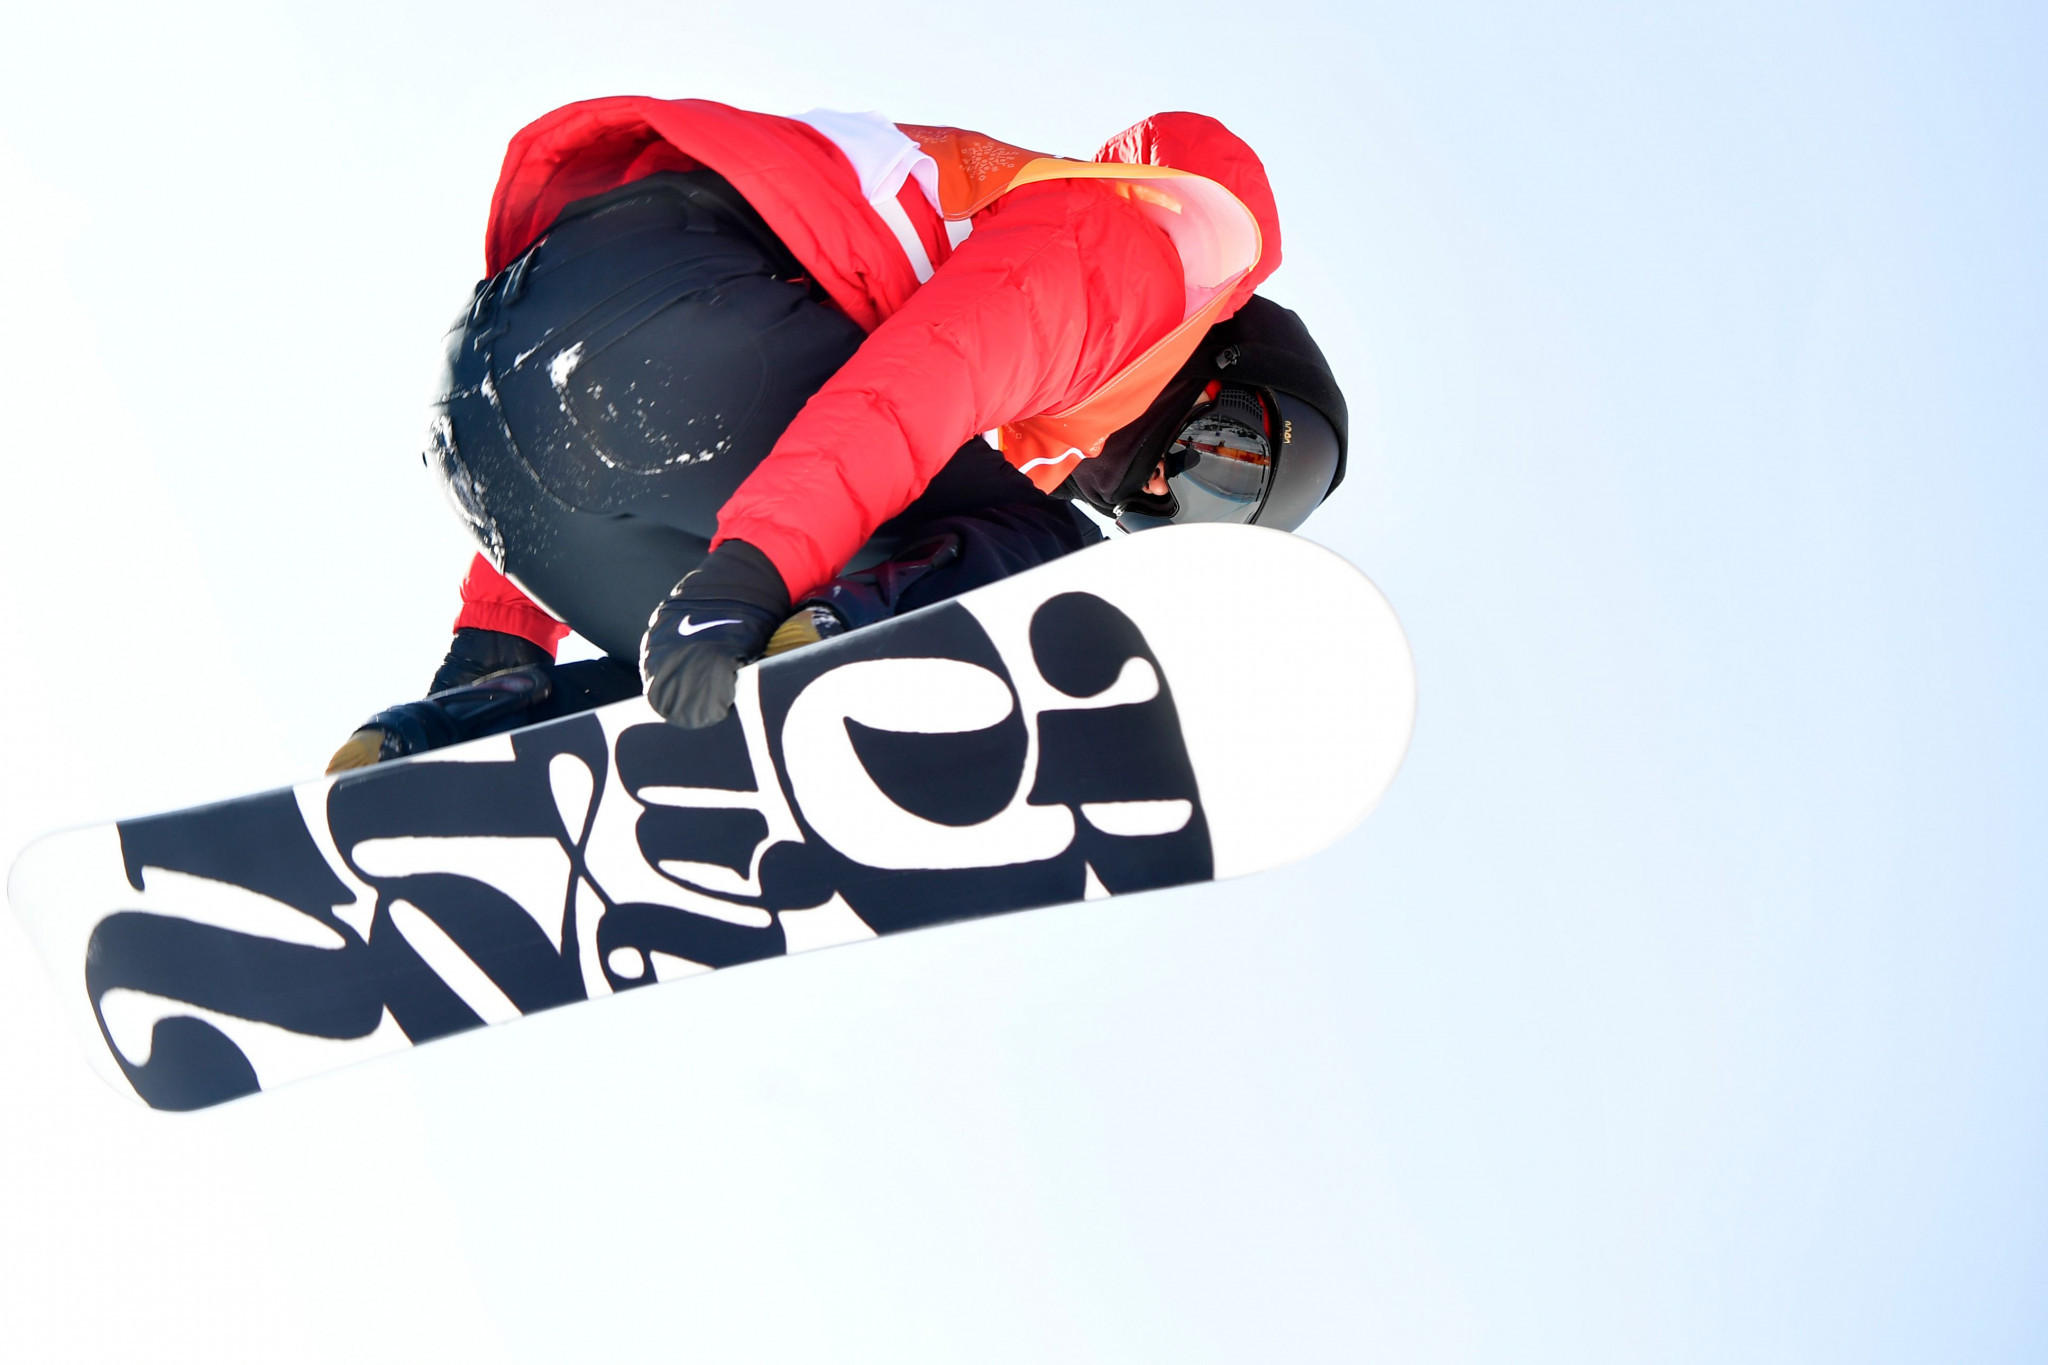 Cai Xuetong has won Halfpipe World Cup gold on home snow at Secret Garden in Hebei province ©Getty Images